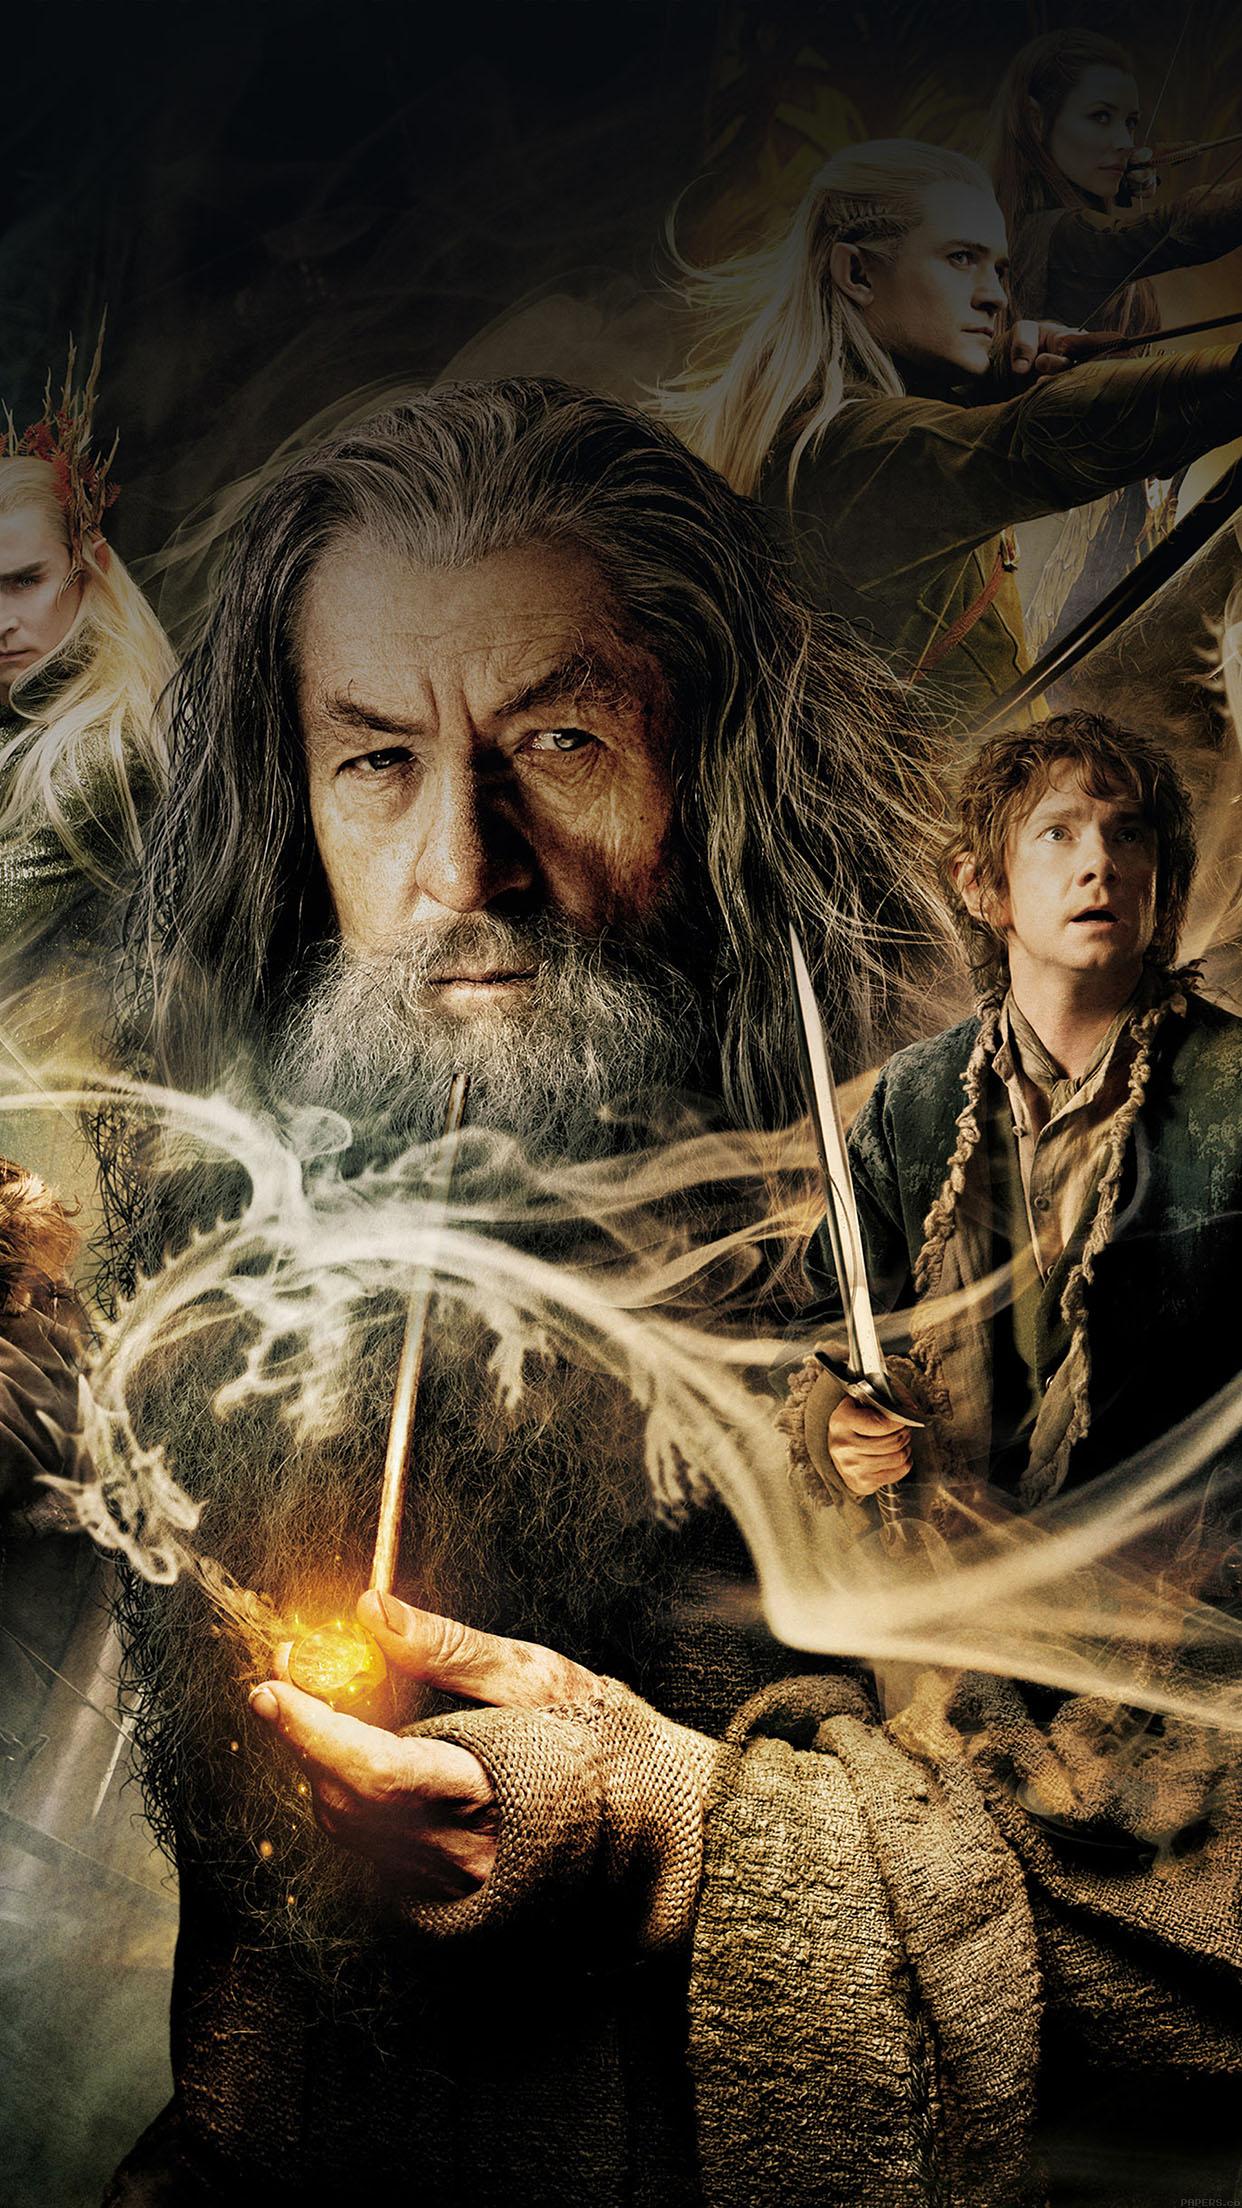 Iphone7papers Ha48 Wallpaper Desolation Of Smaug Hobbit Film Face